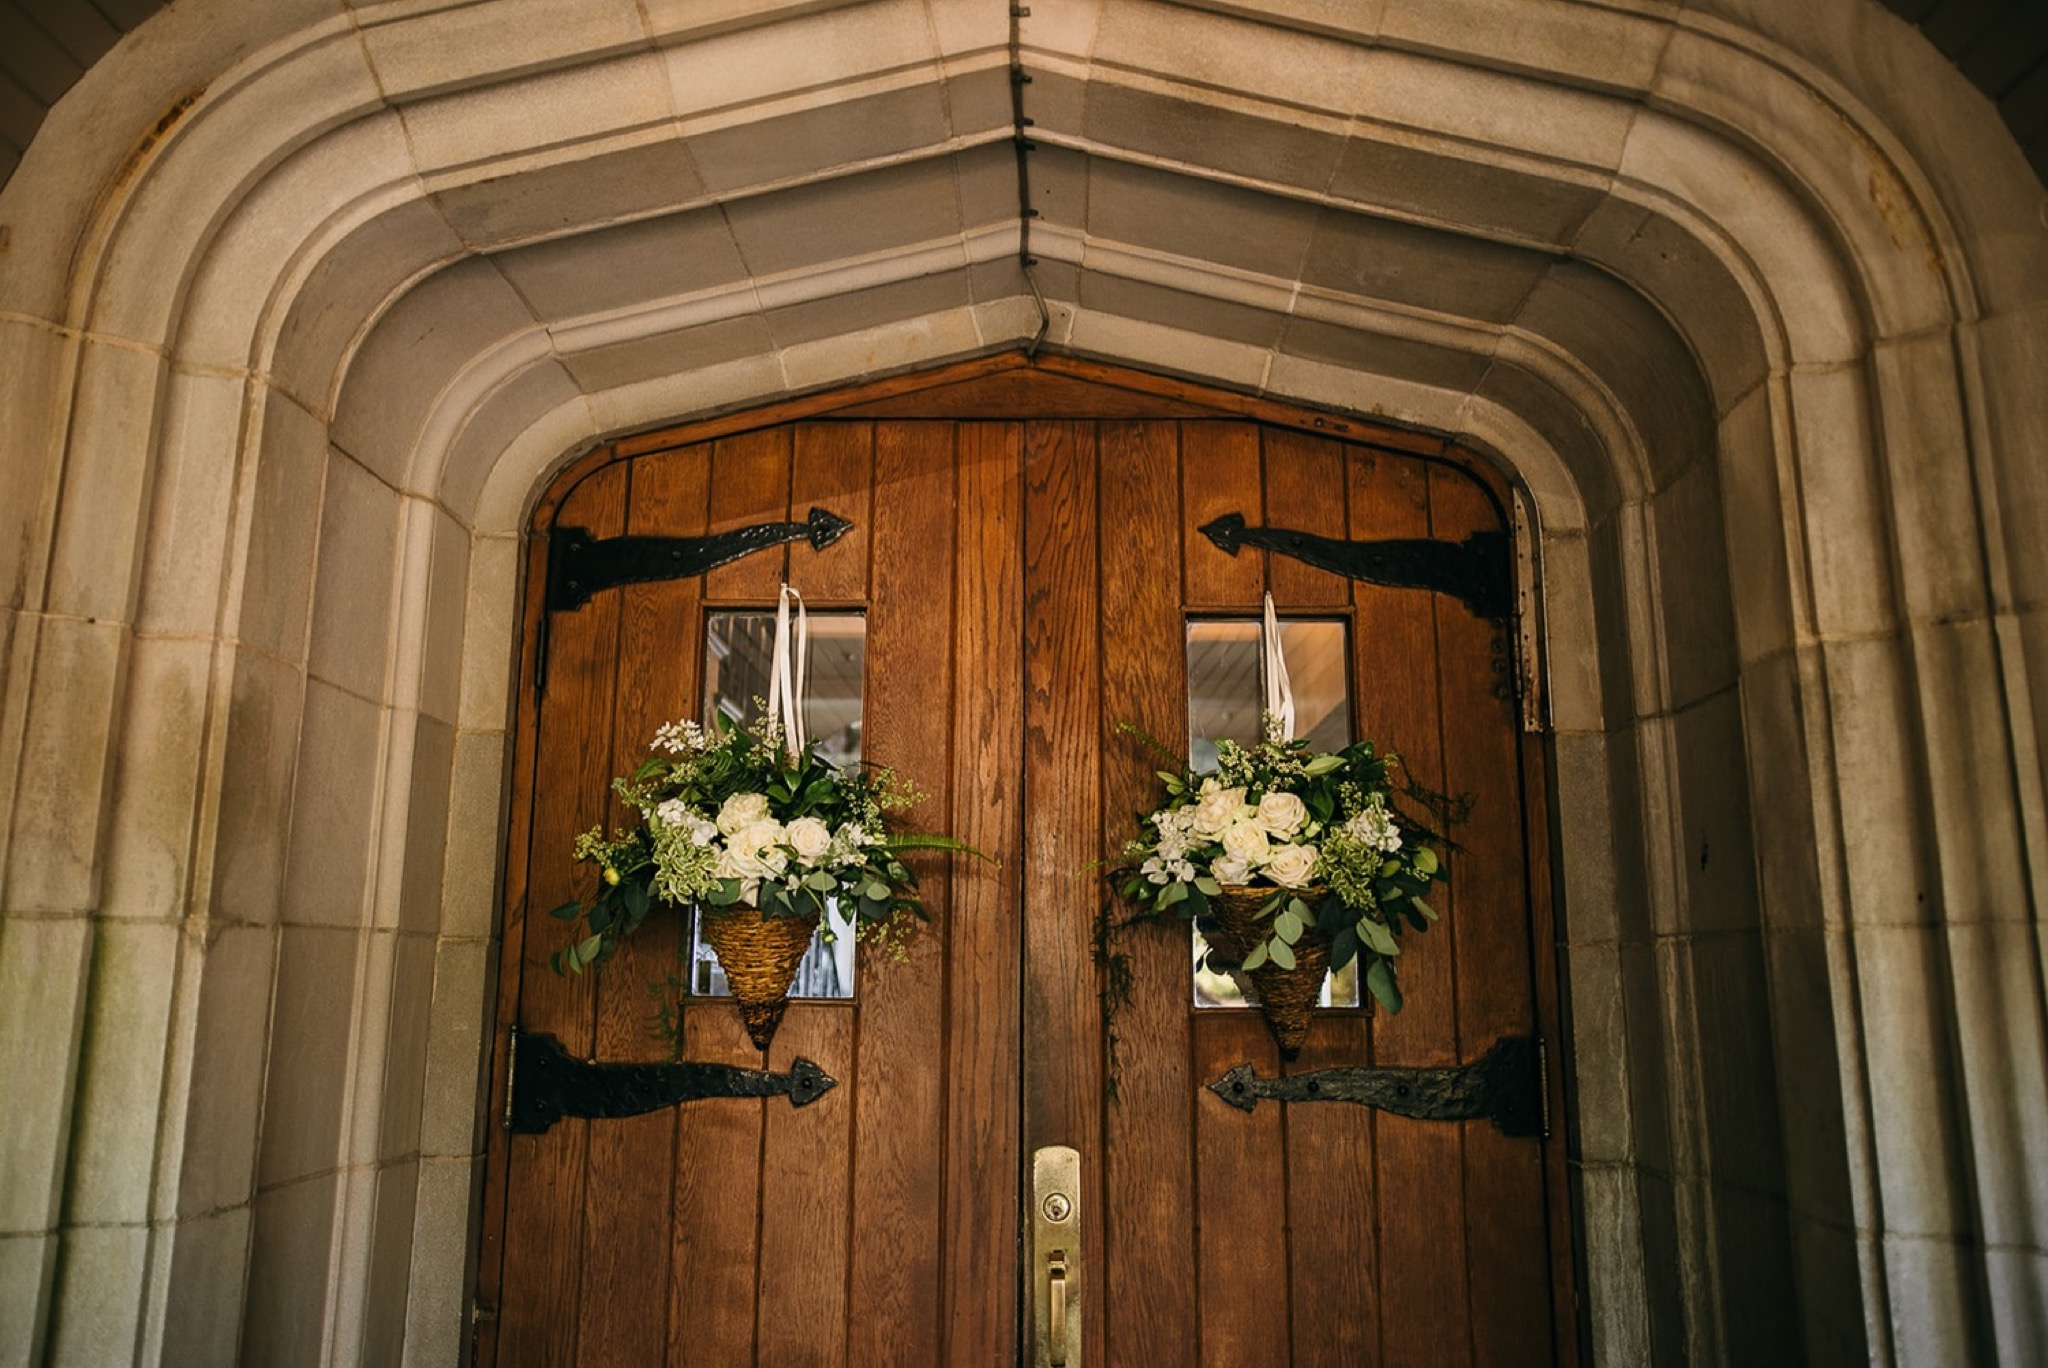 Lookout Mountain Club entrance wooden doors nestled in stone archway